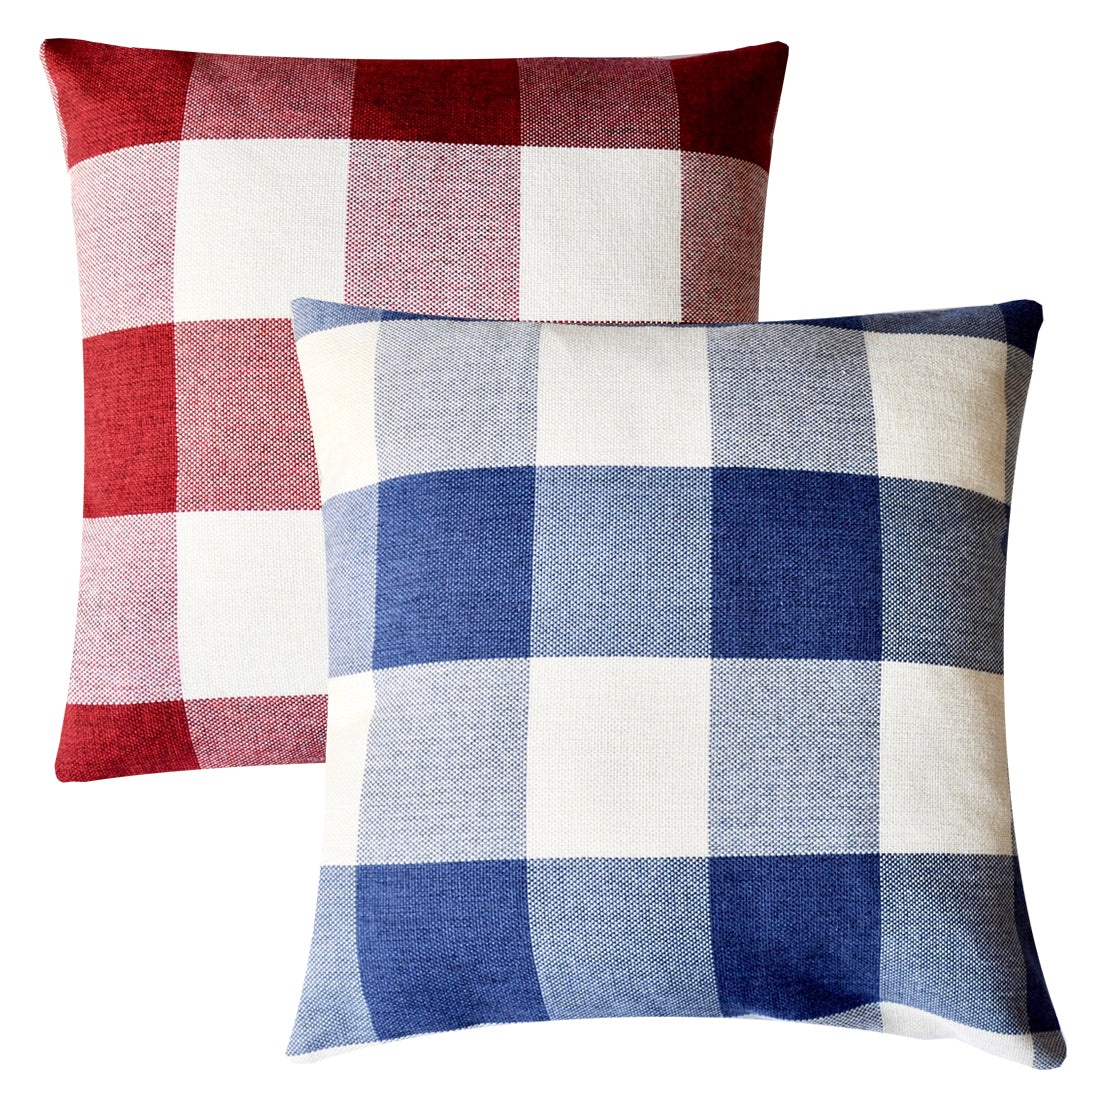 Awe Inspiring Pandicorn 2 Pack Farmhouse Decorative Throw Pillow Covers Blue And White Plaid Textured Throw Pillows Cases Red And White Buffalo Check Pillowcases Ibusinesslaw Wood Chair Design Ideas Ibusinesslaworg